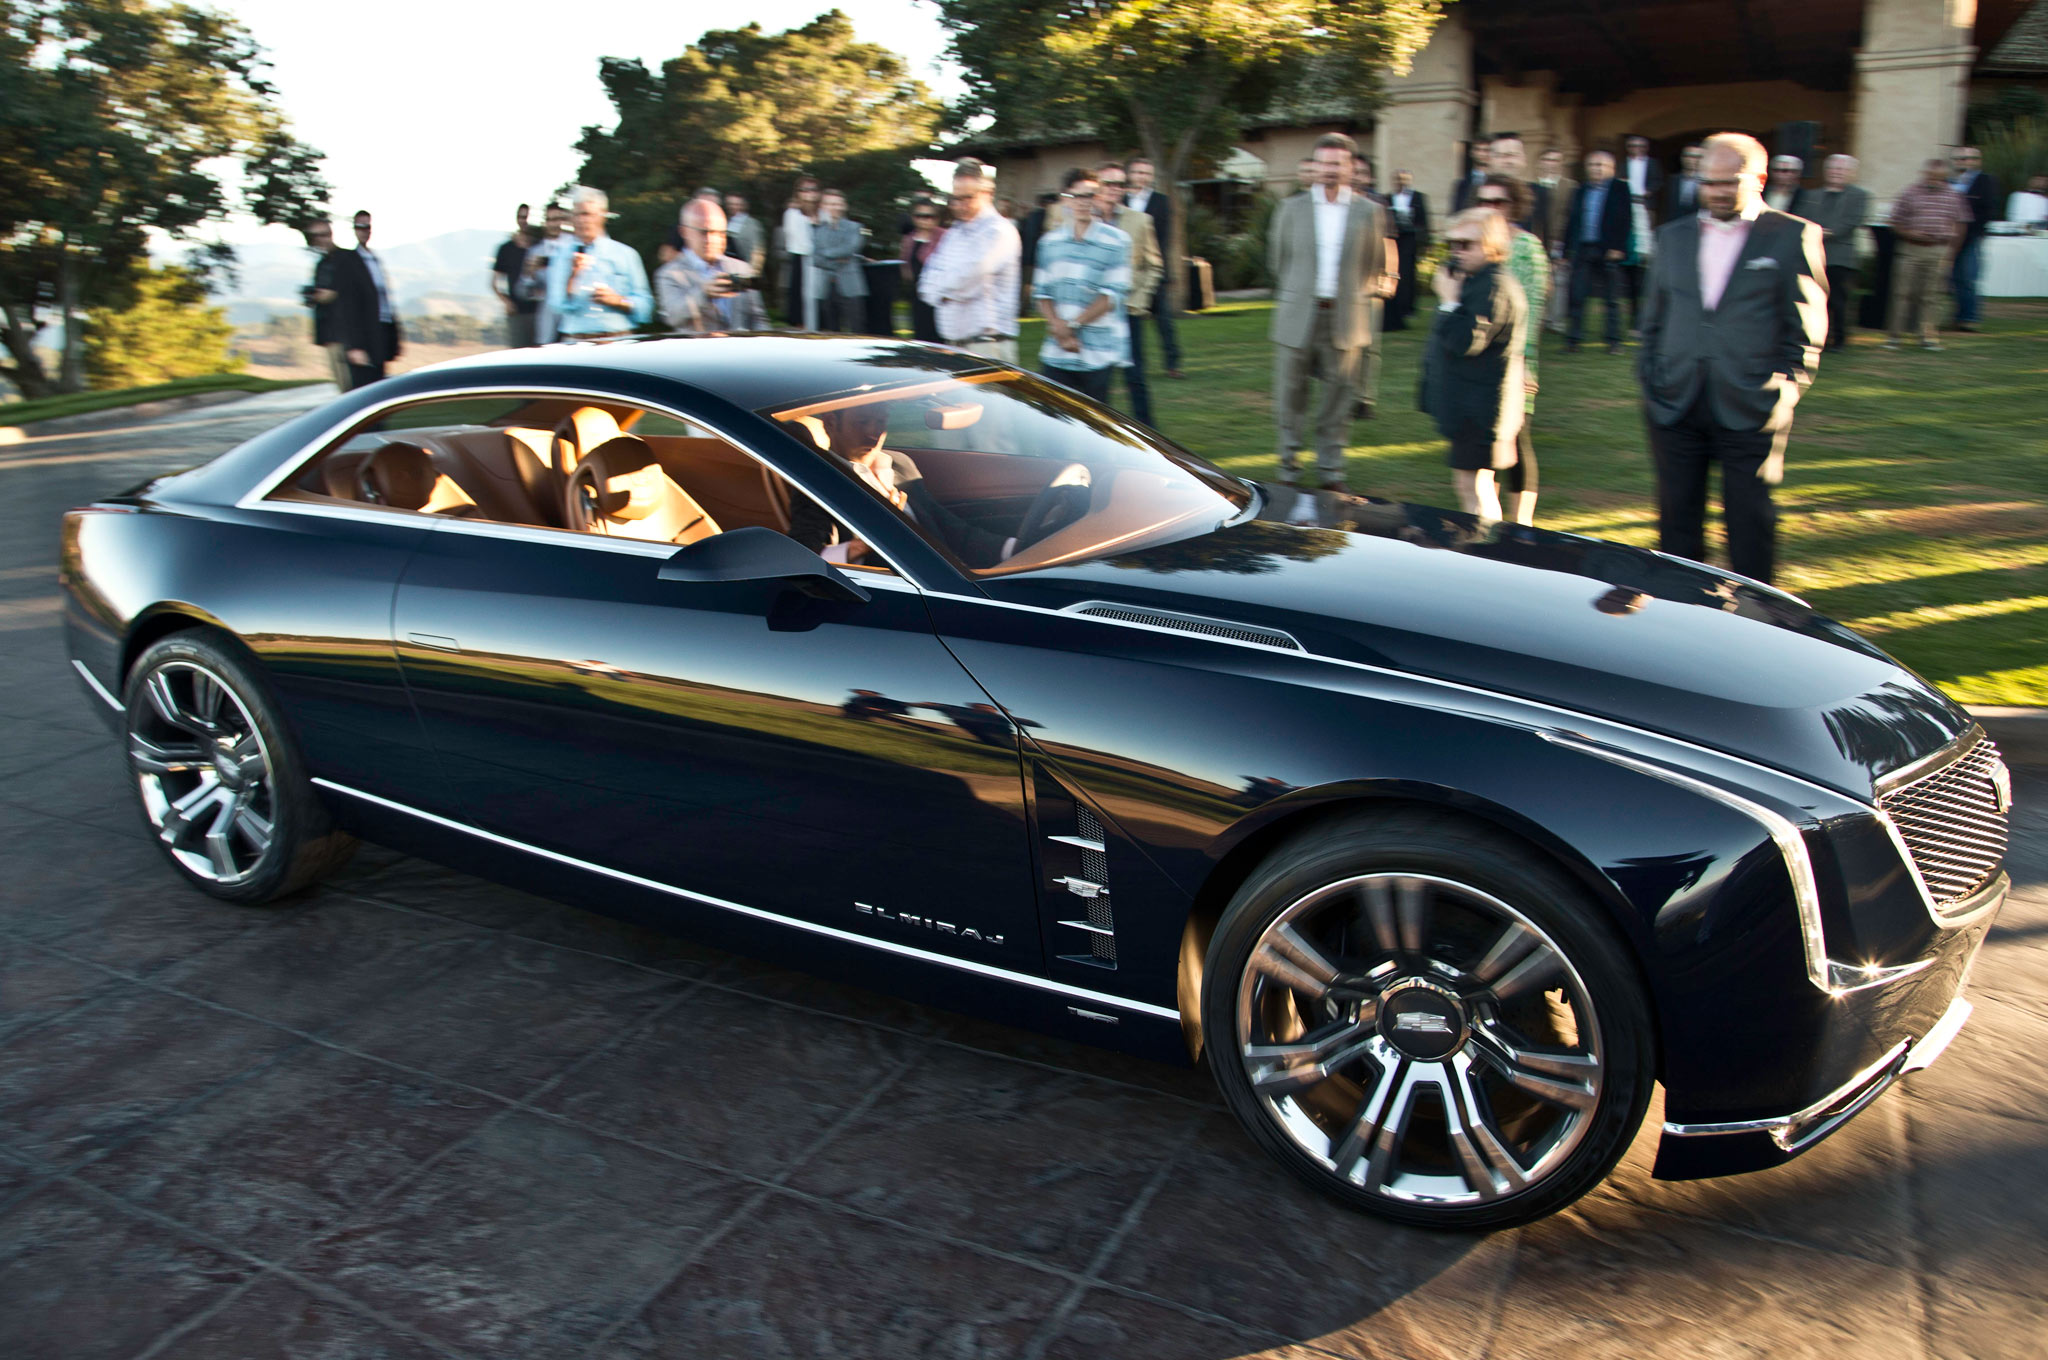 2013 Cadillac Elmiraj Concept Revealed at Pebble Beach - Automobile